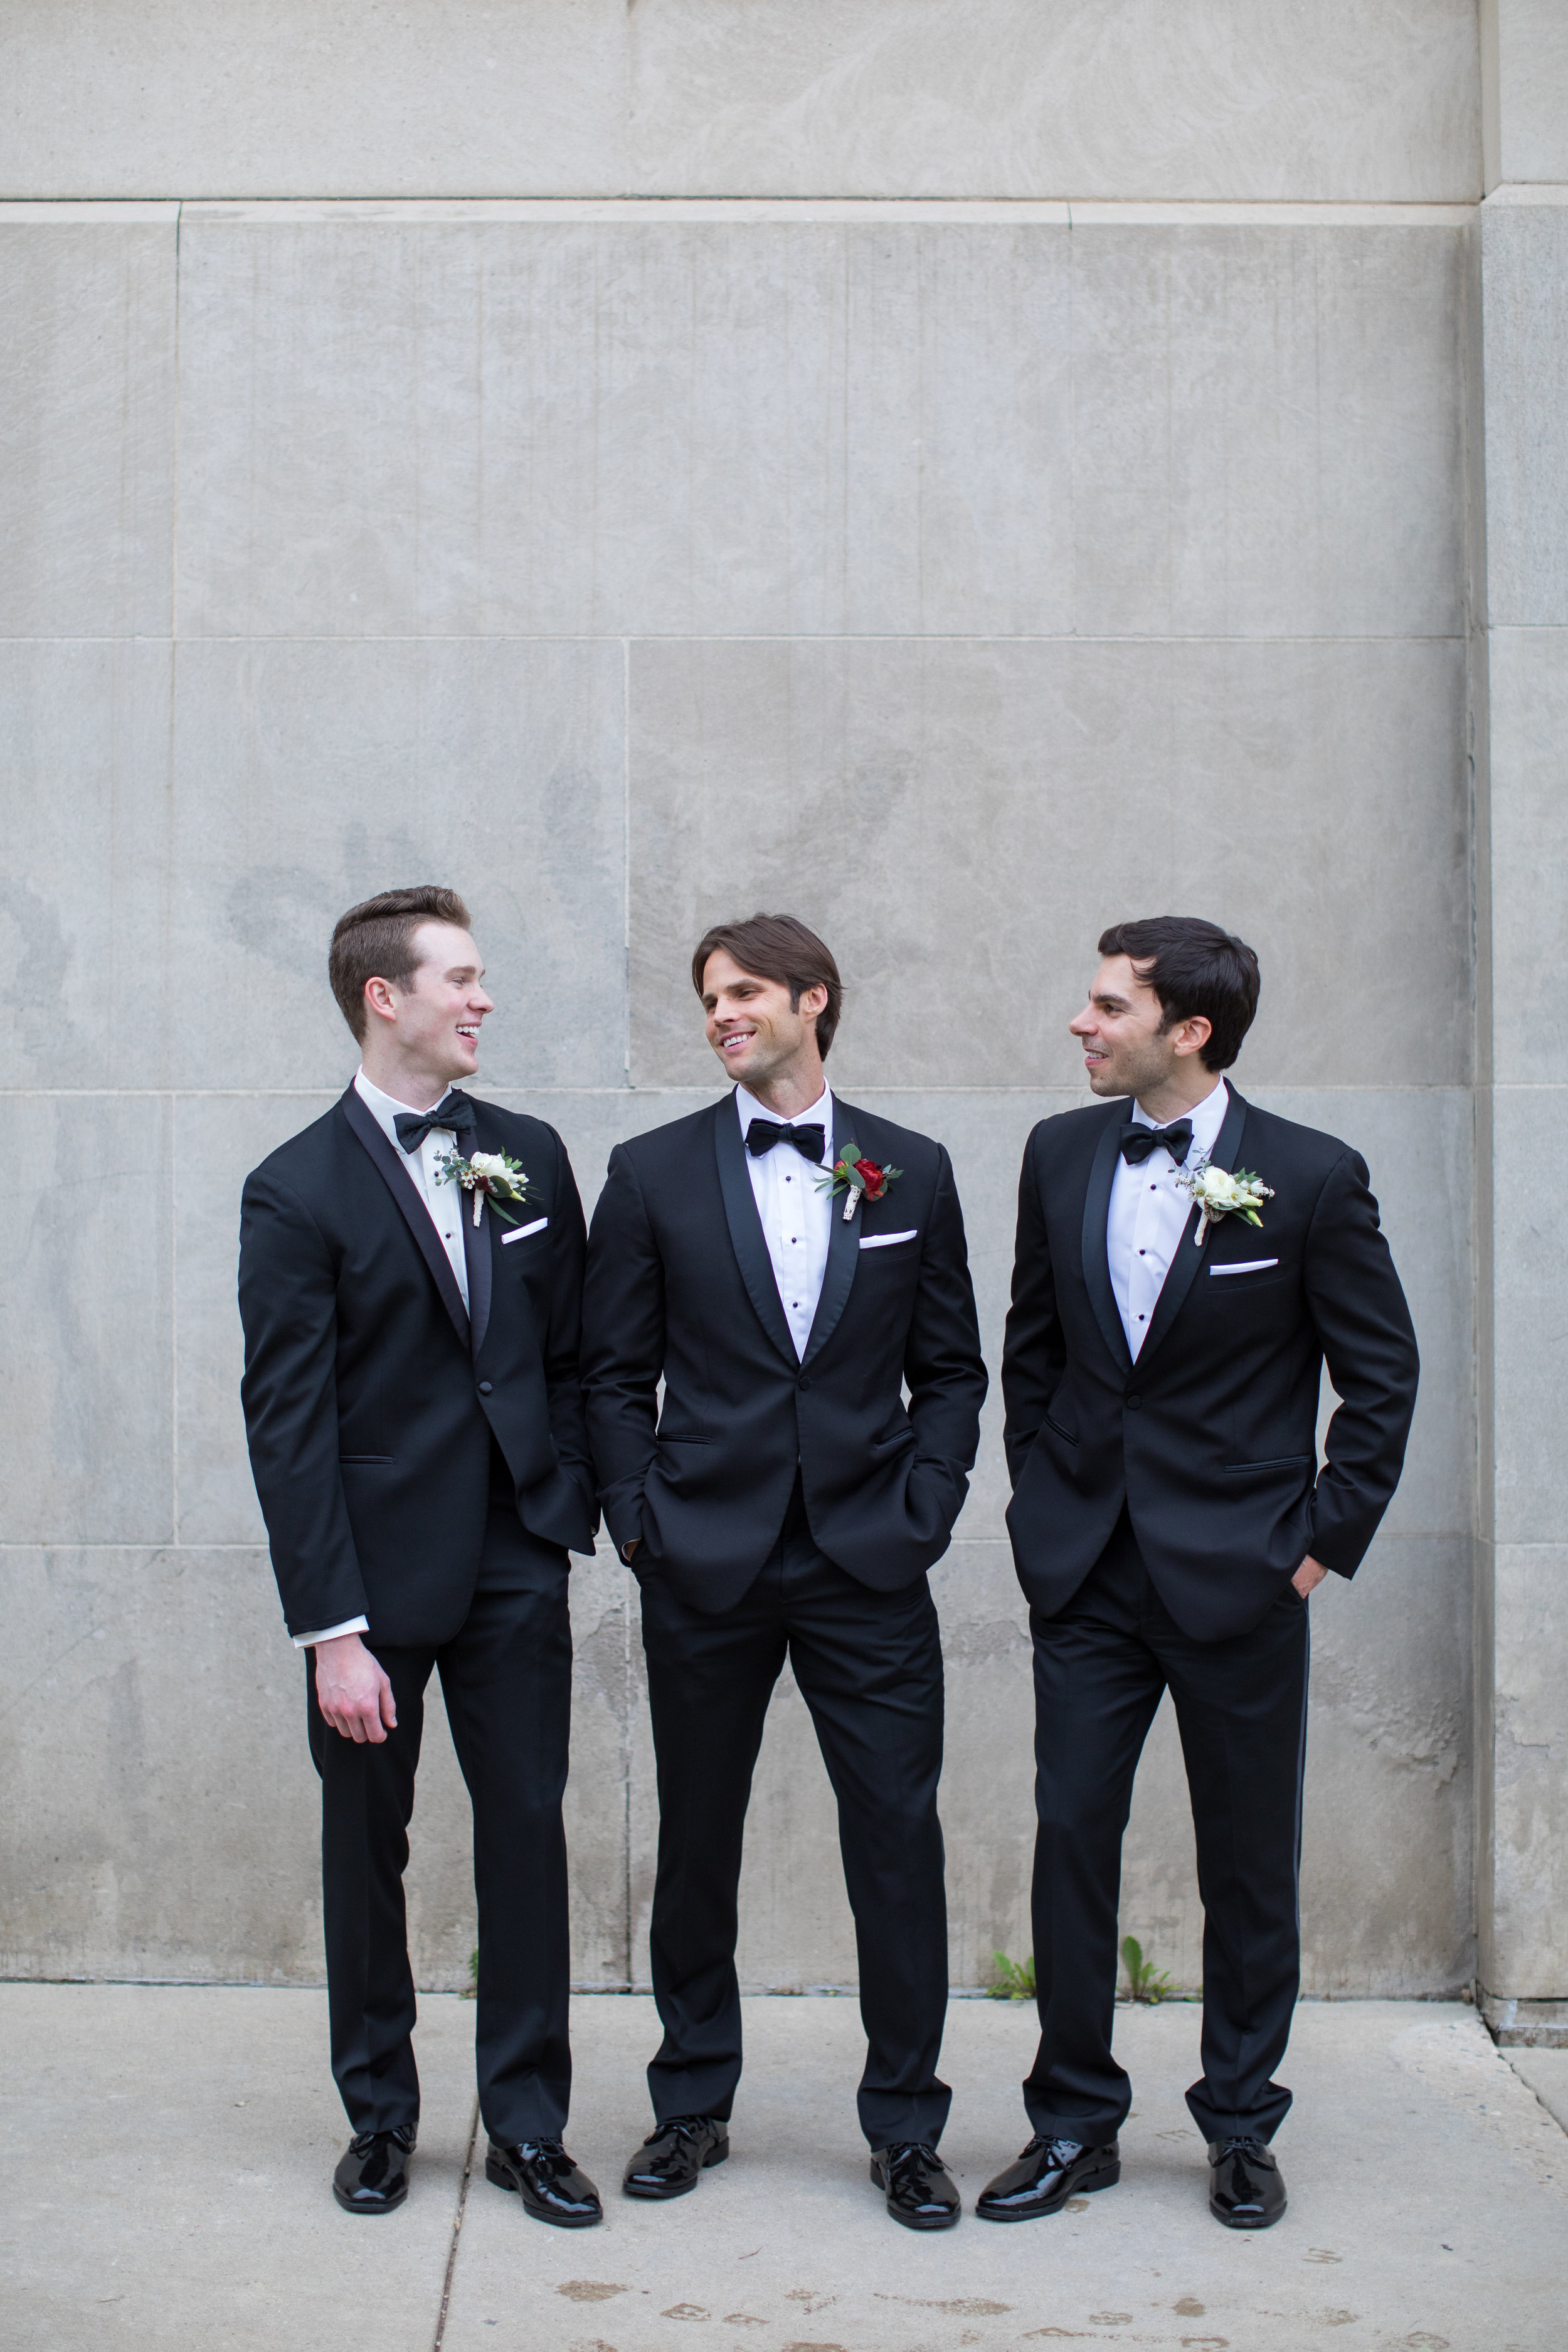 Midwest wedding photographer - groomsmen